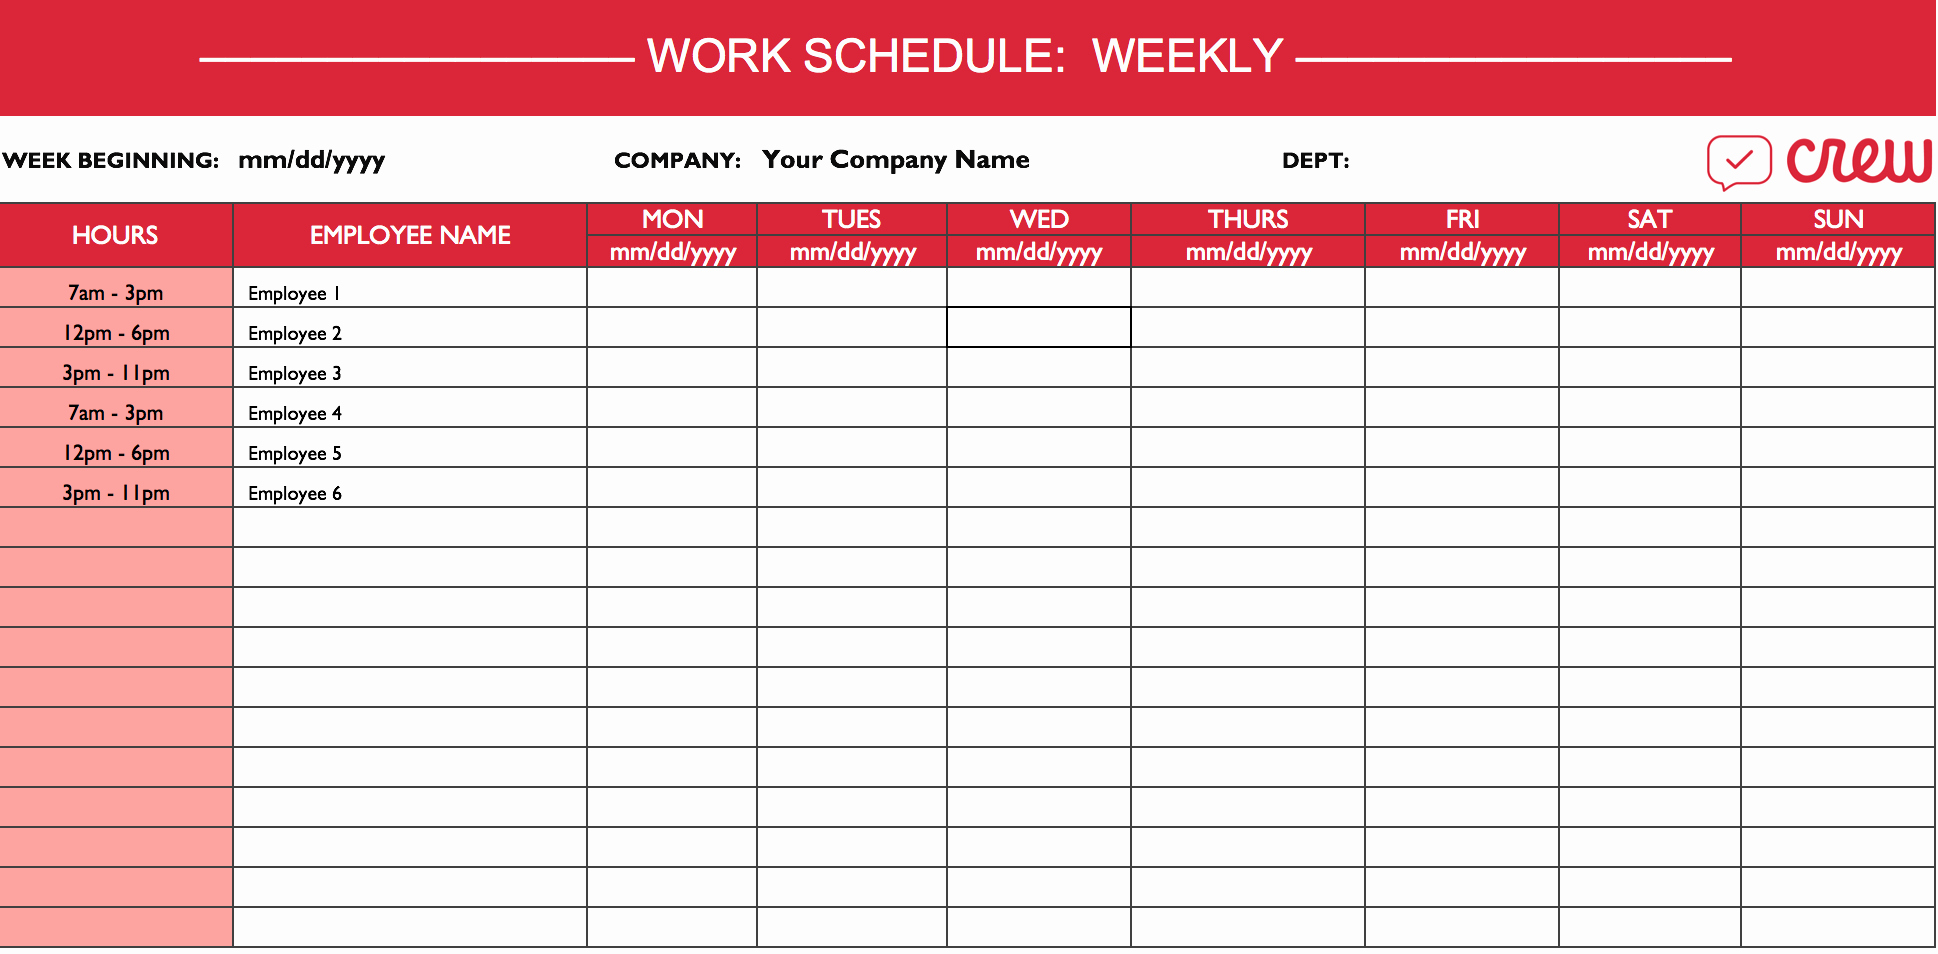 Weekly Staffing Schedule Template Best Of Weekly Work Schedule Template I Crew